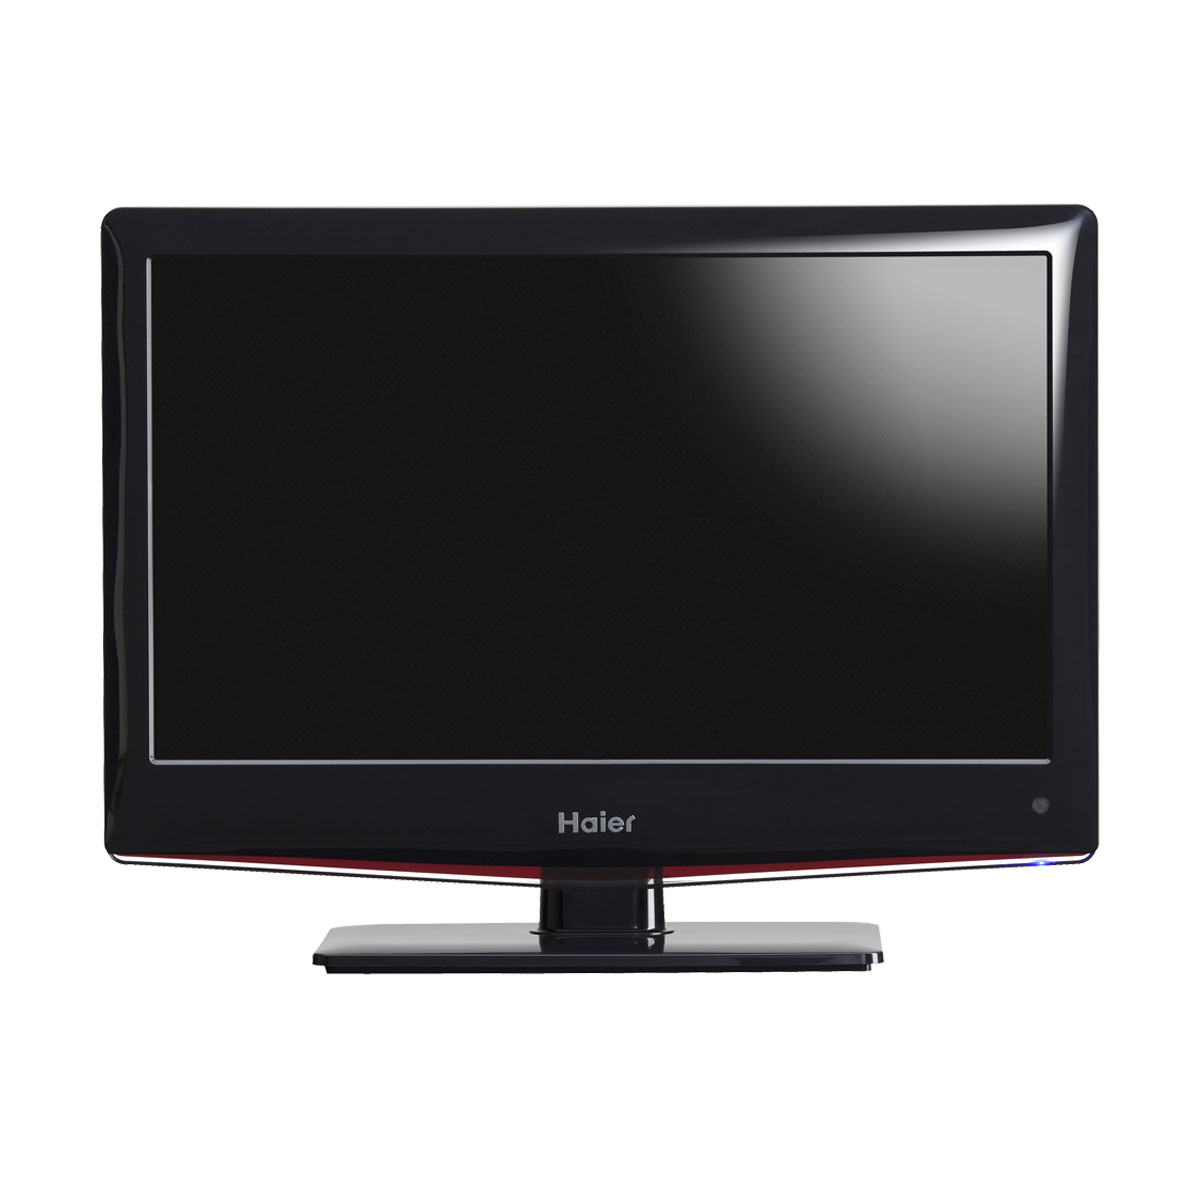 haier let26c430f tv haier sur ldlc. Black Bedroom Furniture Sets. Home Design Ideas